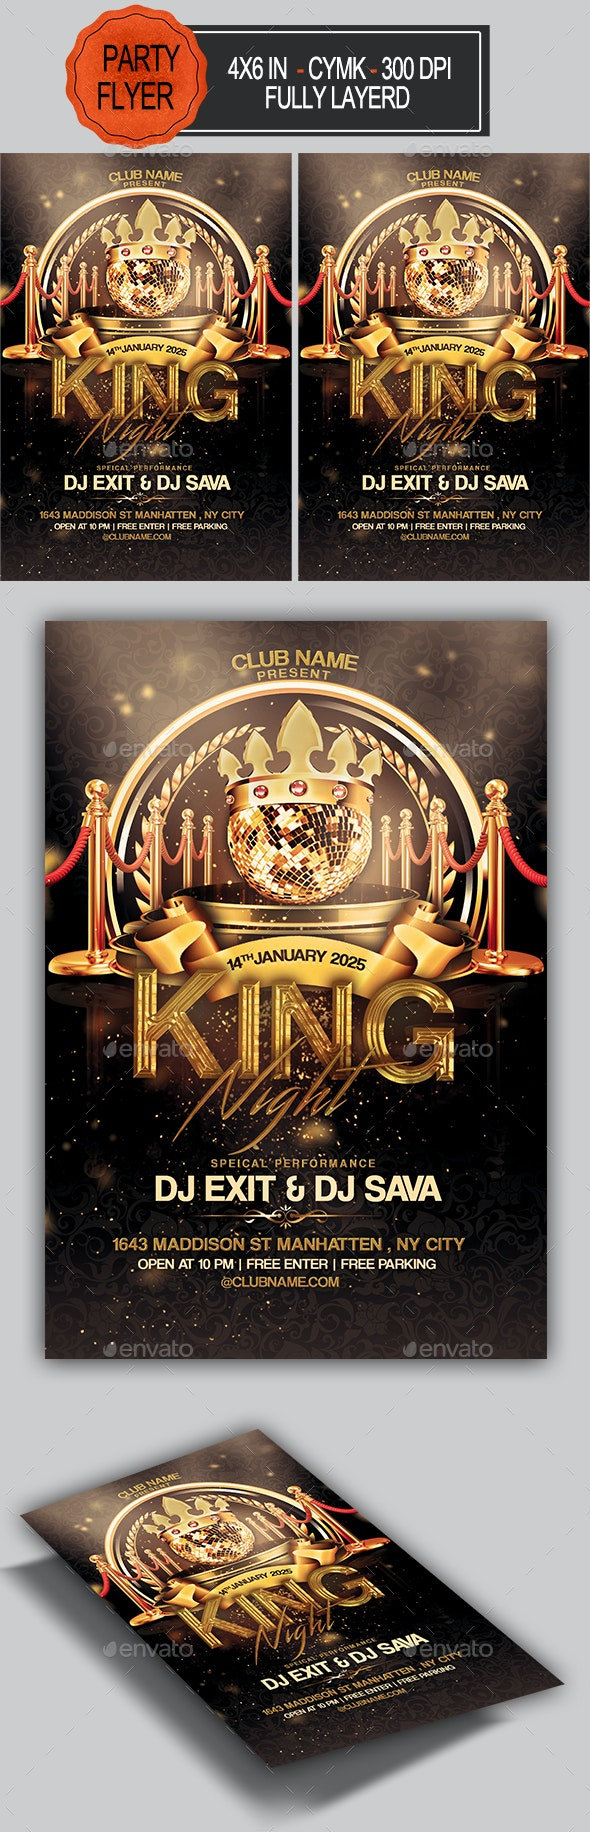 King Night Party Flyer - Clubs & Parties Events